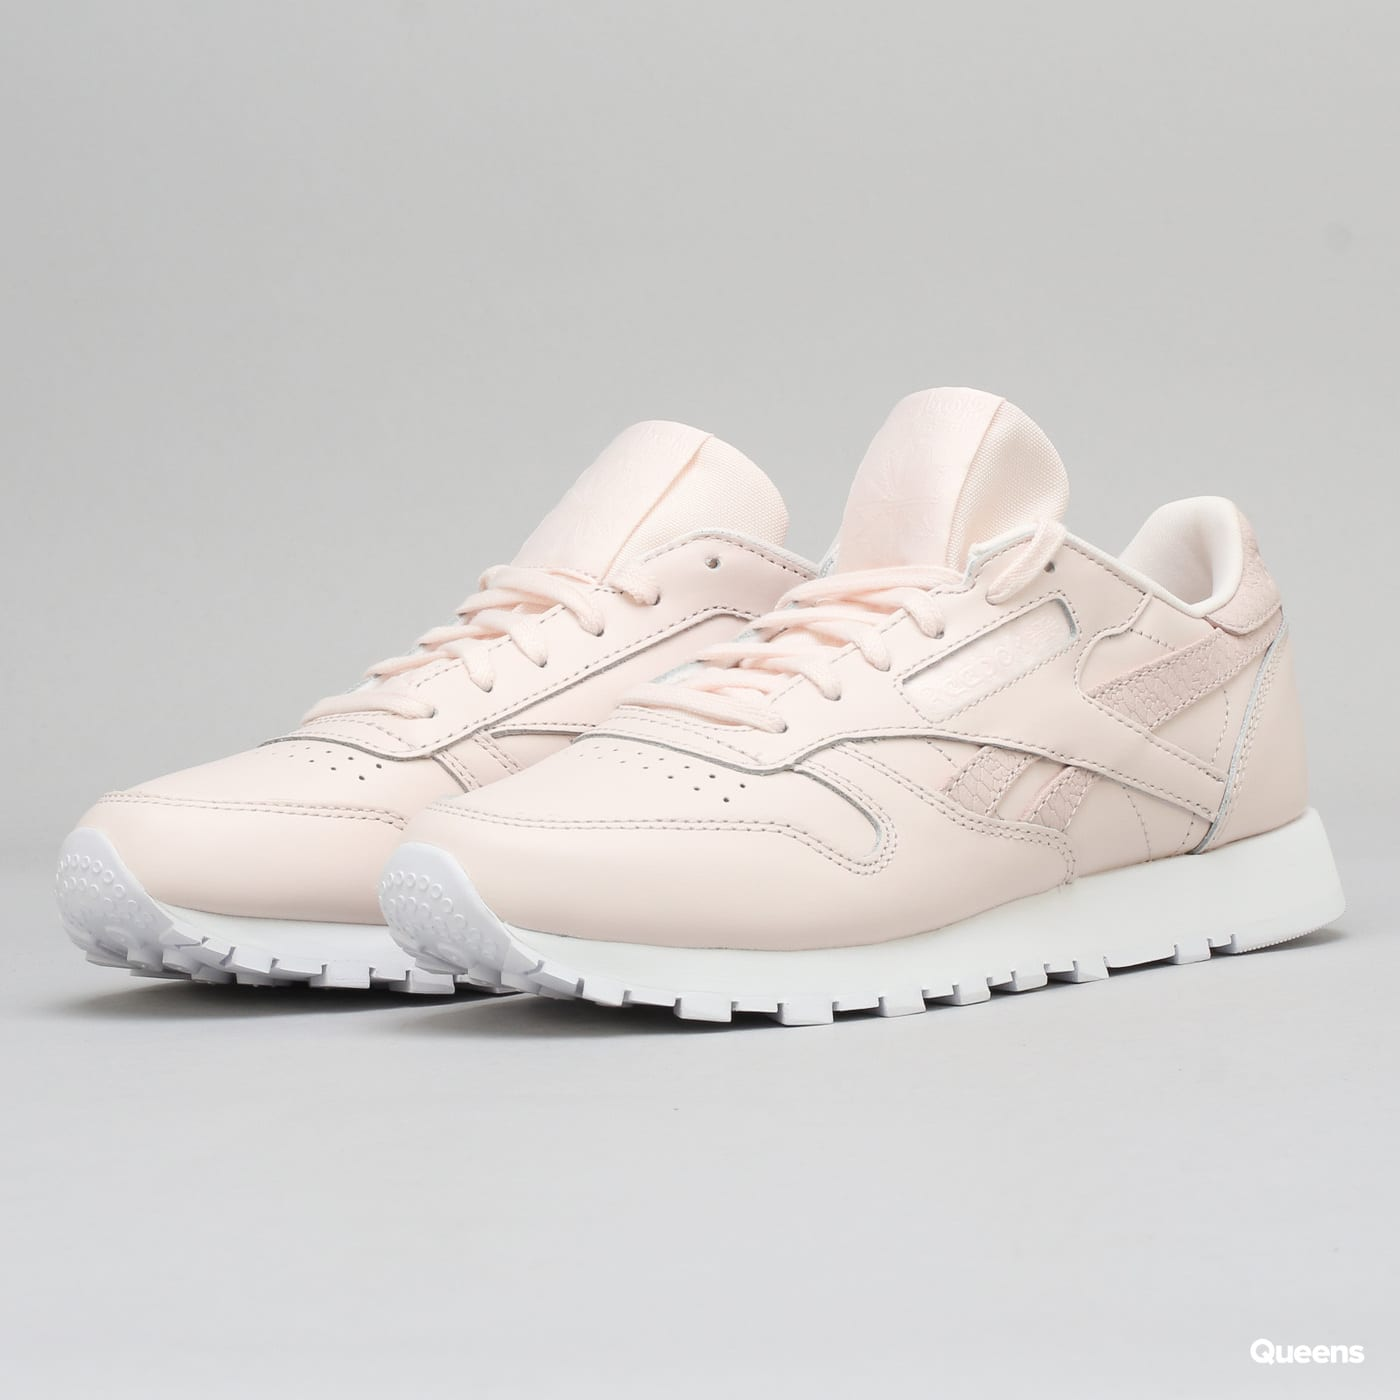 Enemistarse boleto Simular  Reebok Classic Leather PS Pastel pale pink / white (CM9160) – Queens 💚